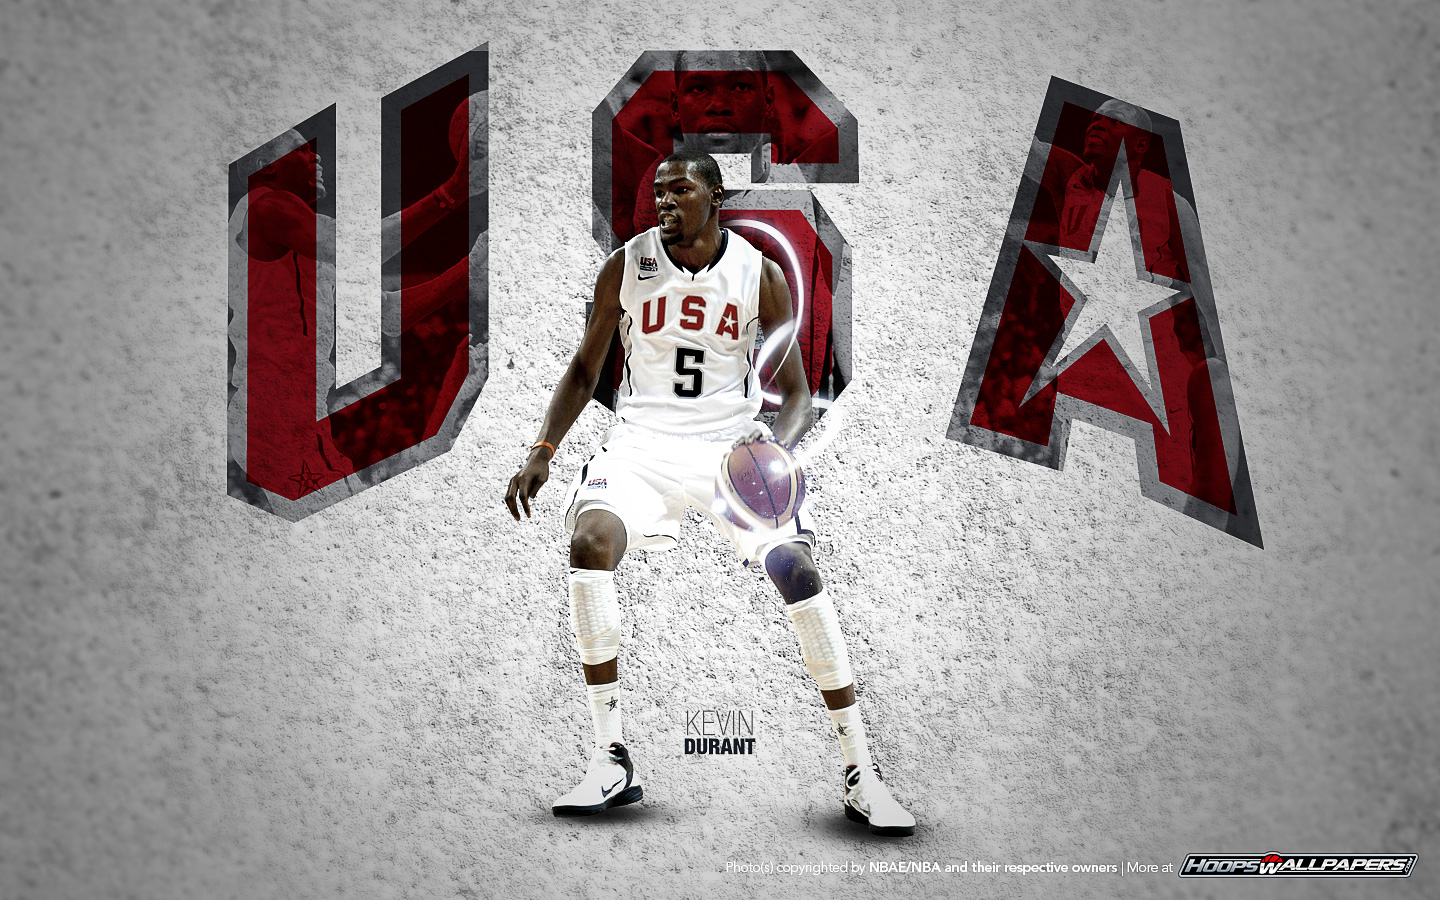 ... Newest NBA and basketball wallpapers for free download. » Team USA